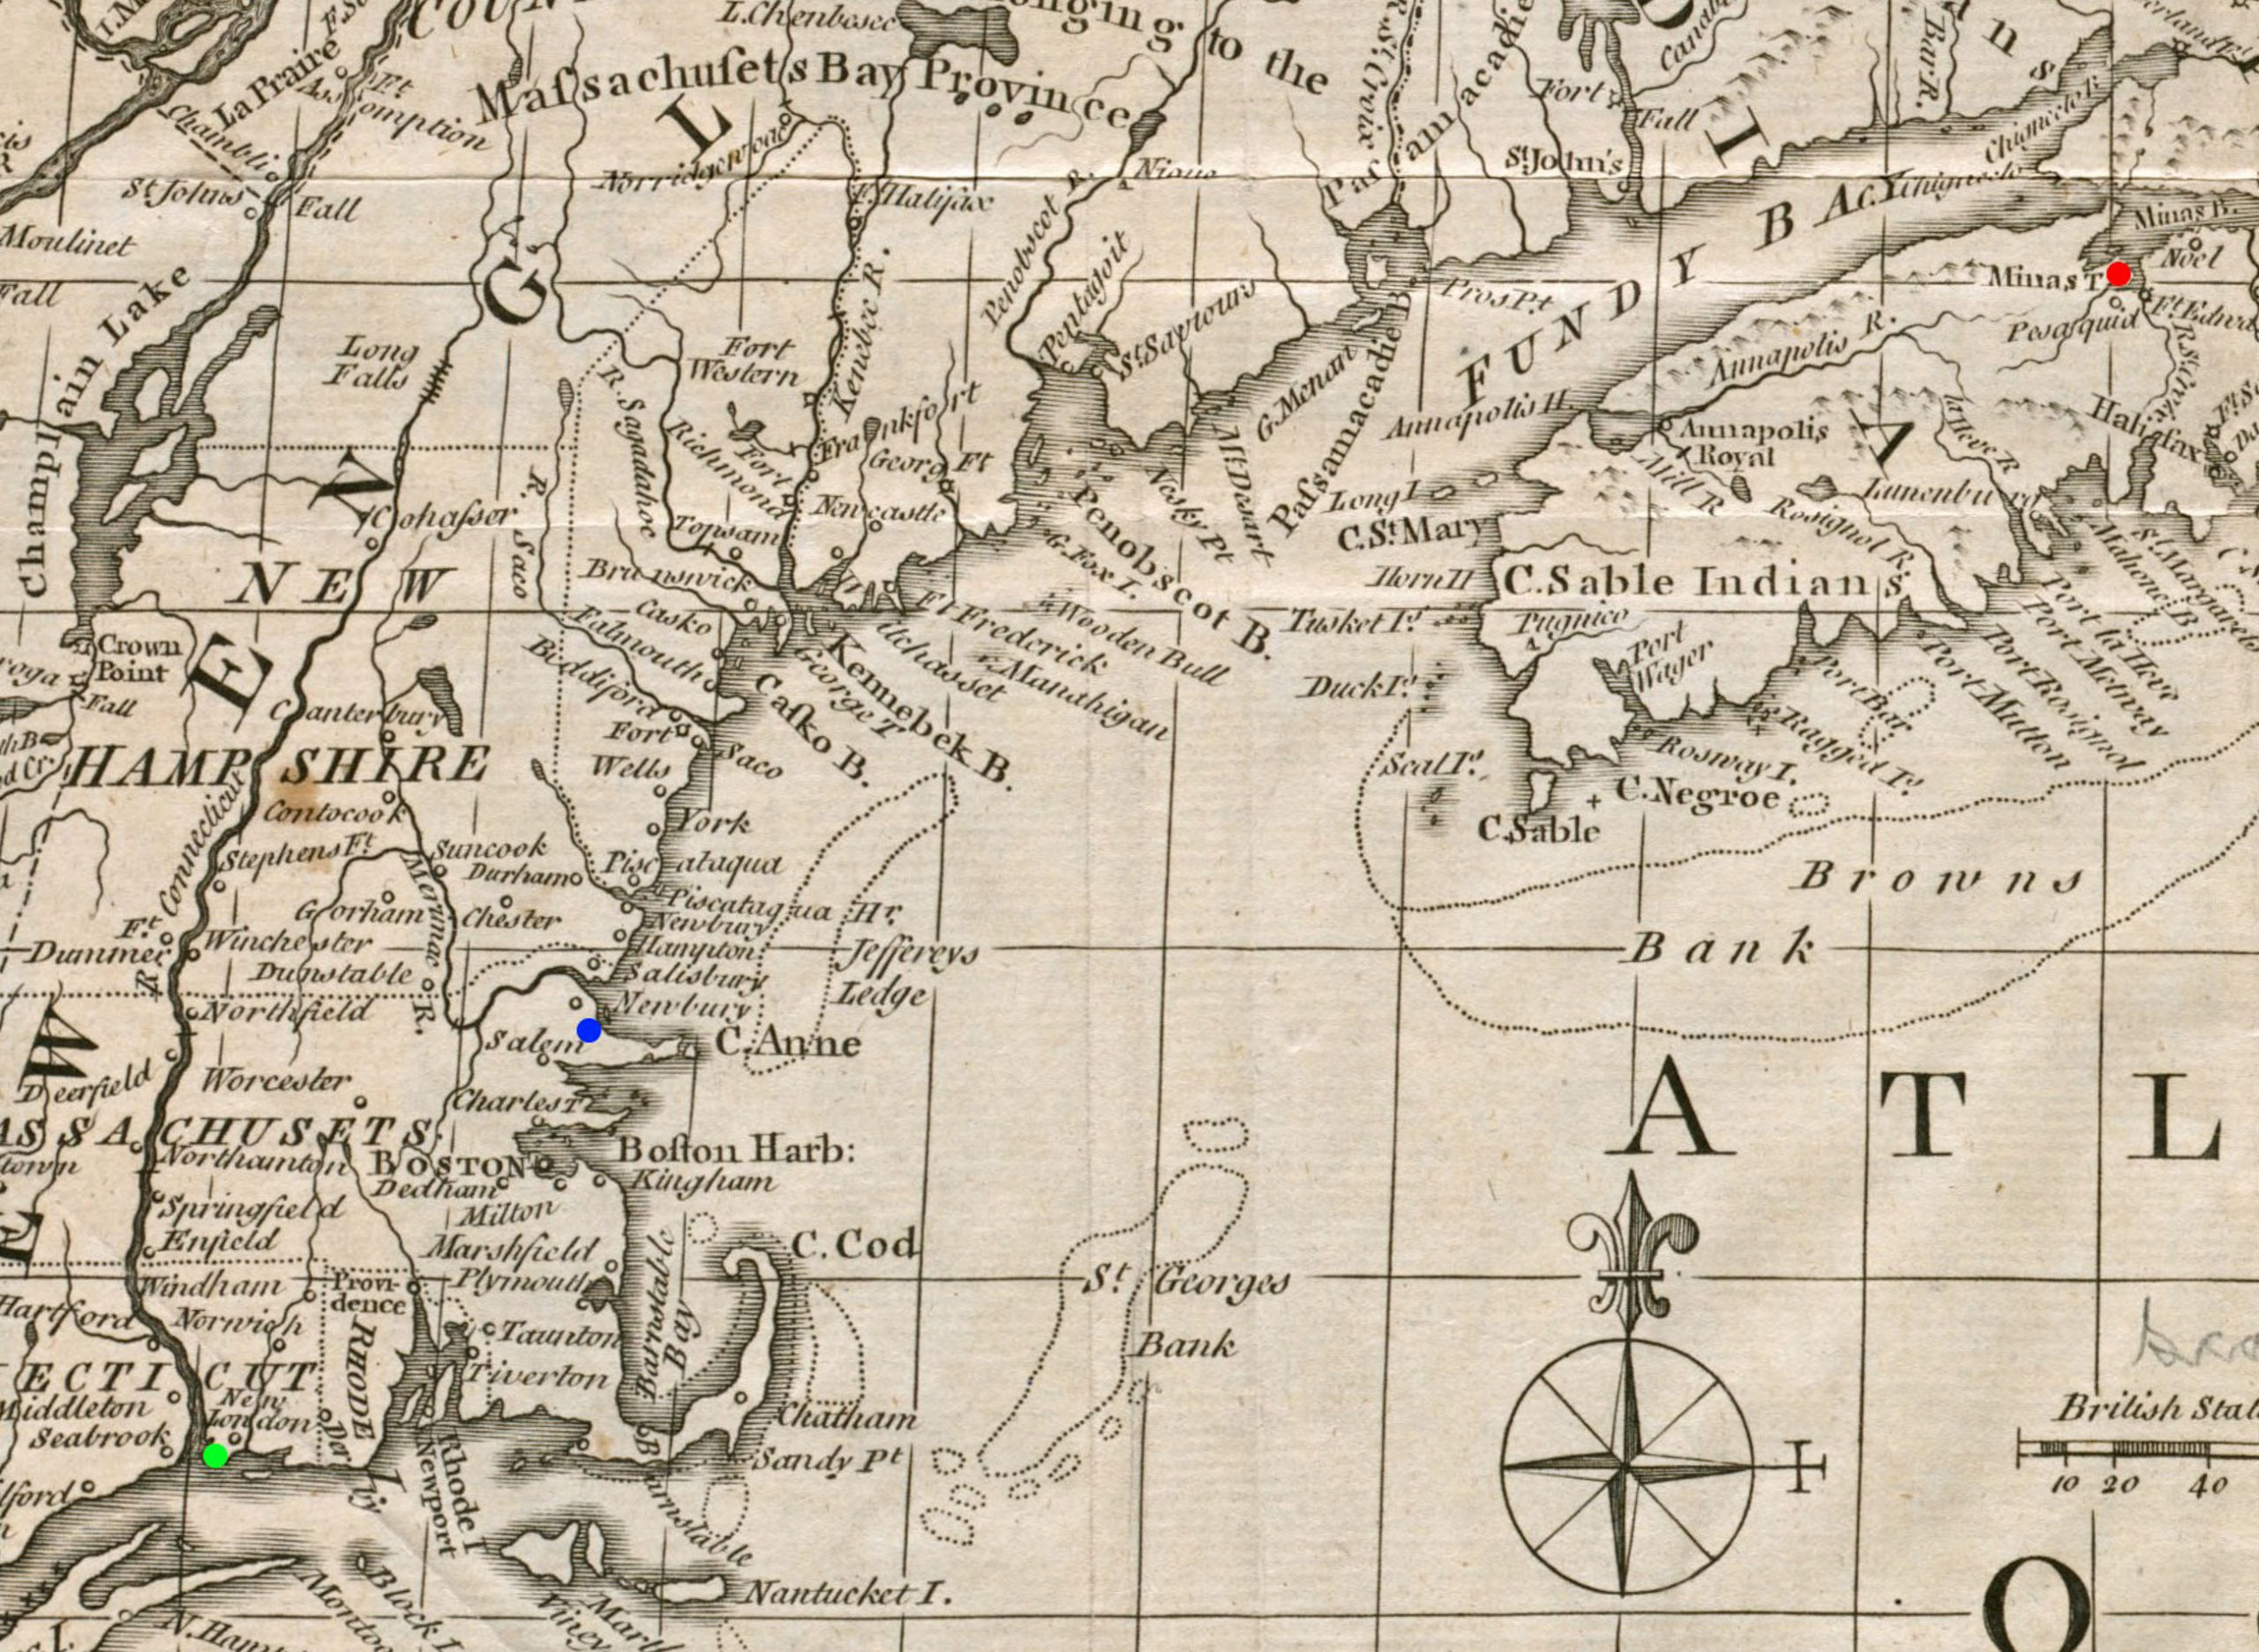 A Map of New England & Nova Scotia by Kitchin, 1758